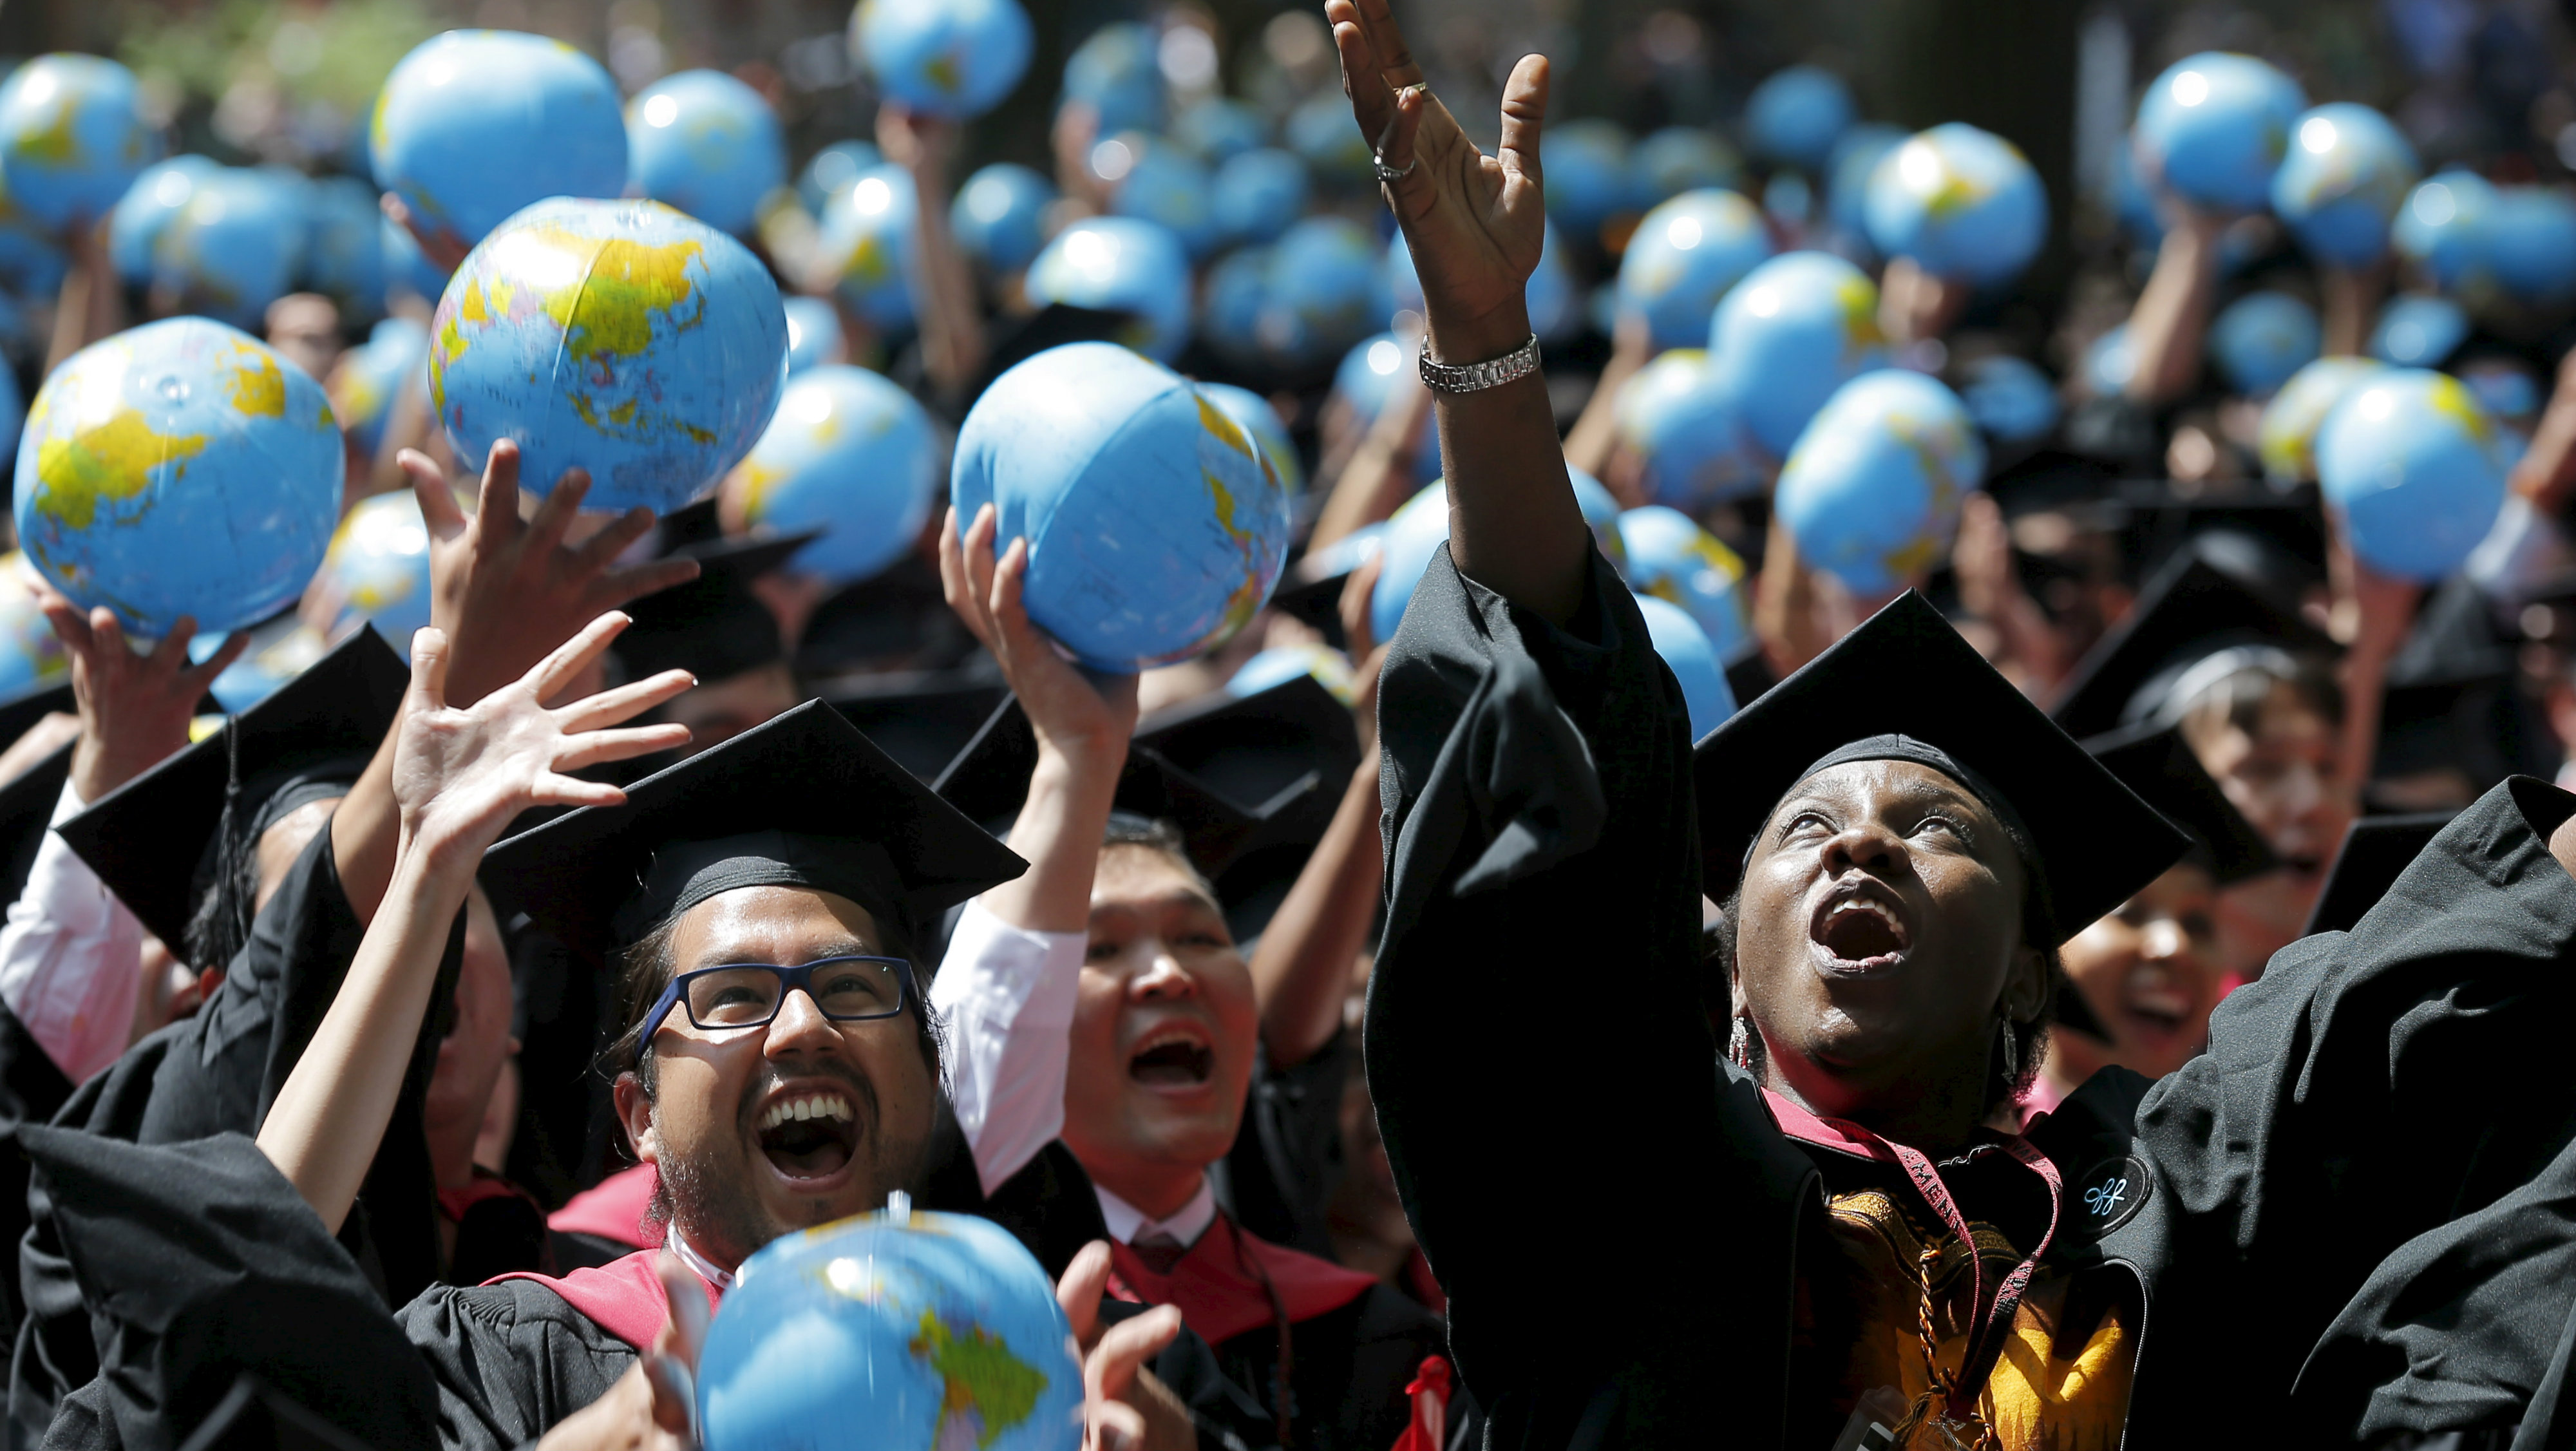 A commencement ceremony with globe balloons.